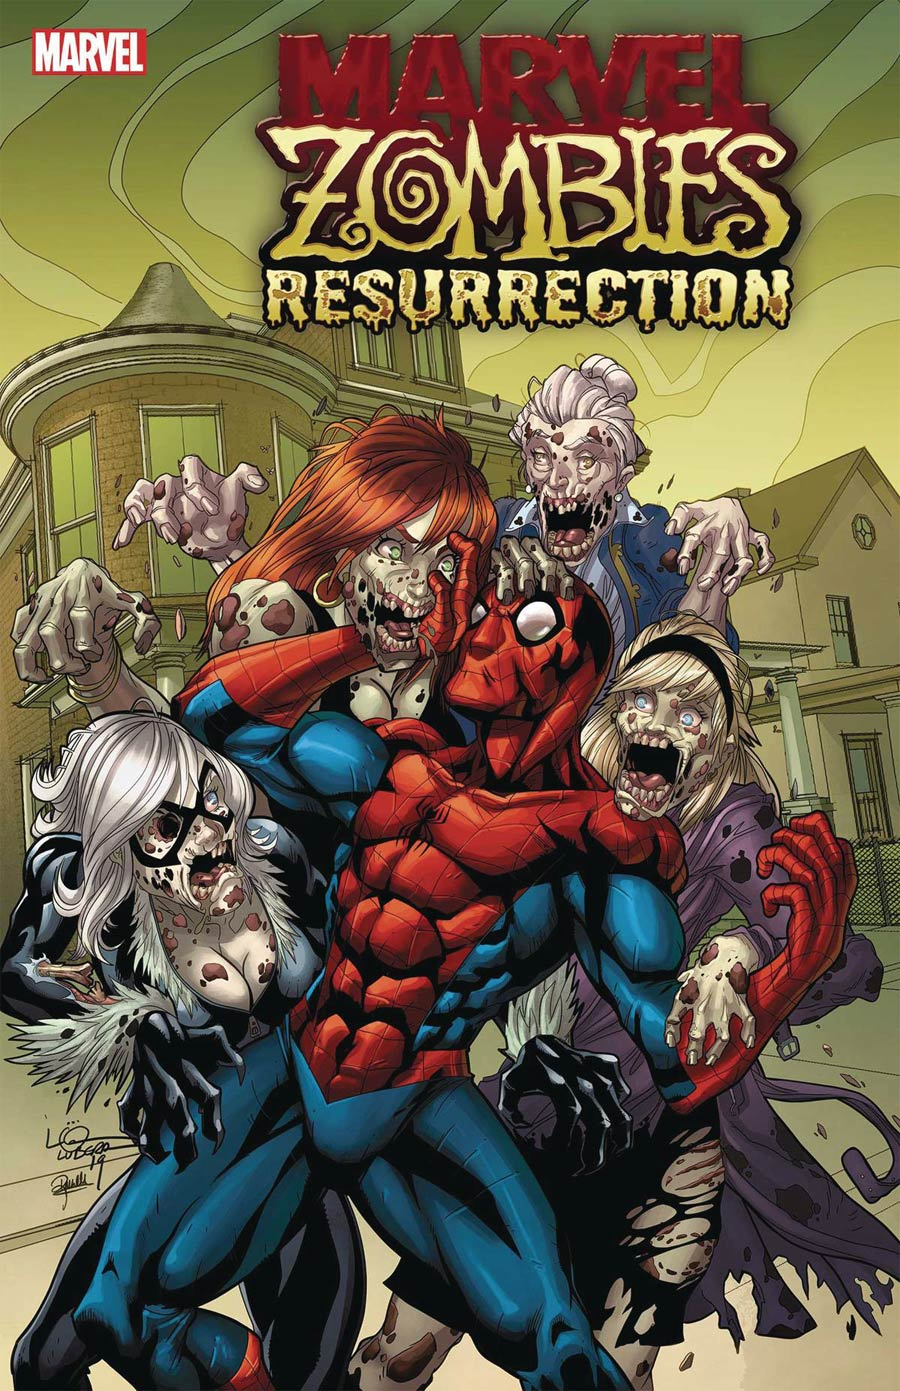 Marvel Zombies Resurrection #1 Cover C Variant Logan Lubera Cover